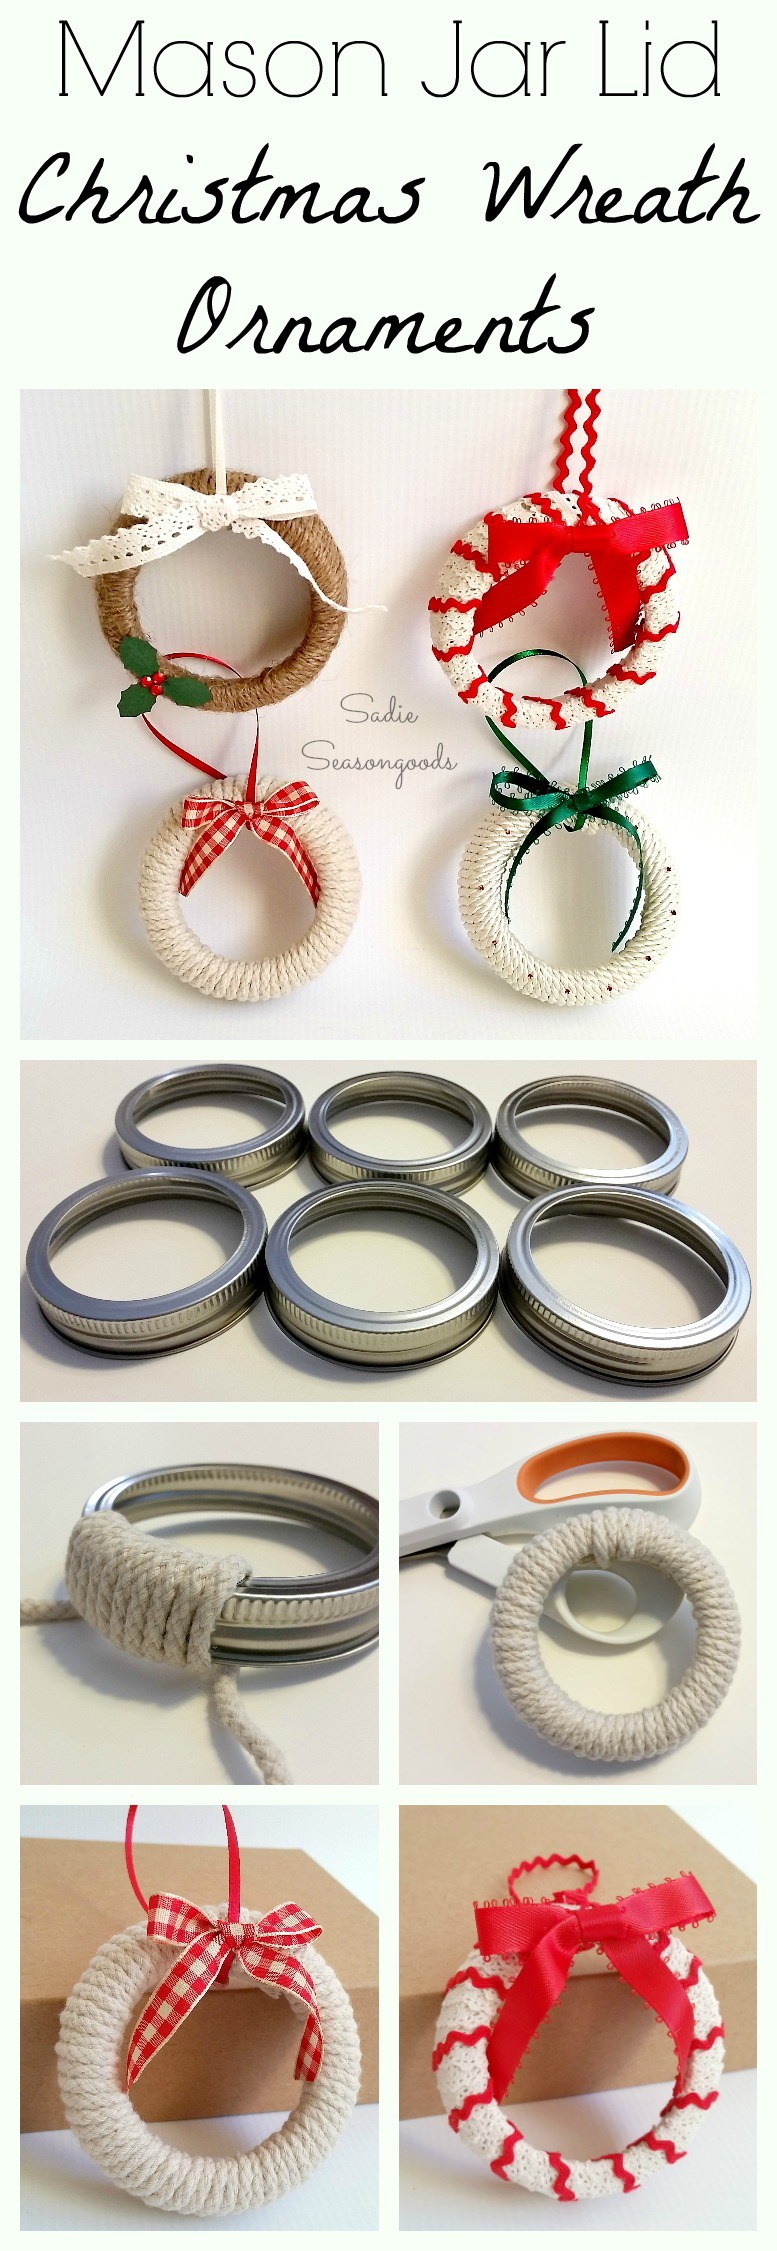 Christmas_wreath_ornament_DIY_craft_project_with_repurposed_mason_jar_lid_ring_by_Sadie_Seasongoods